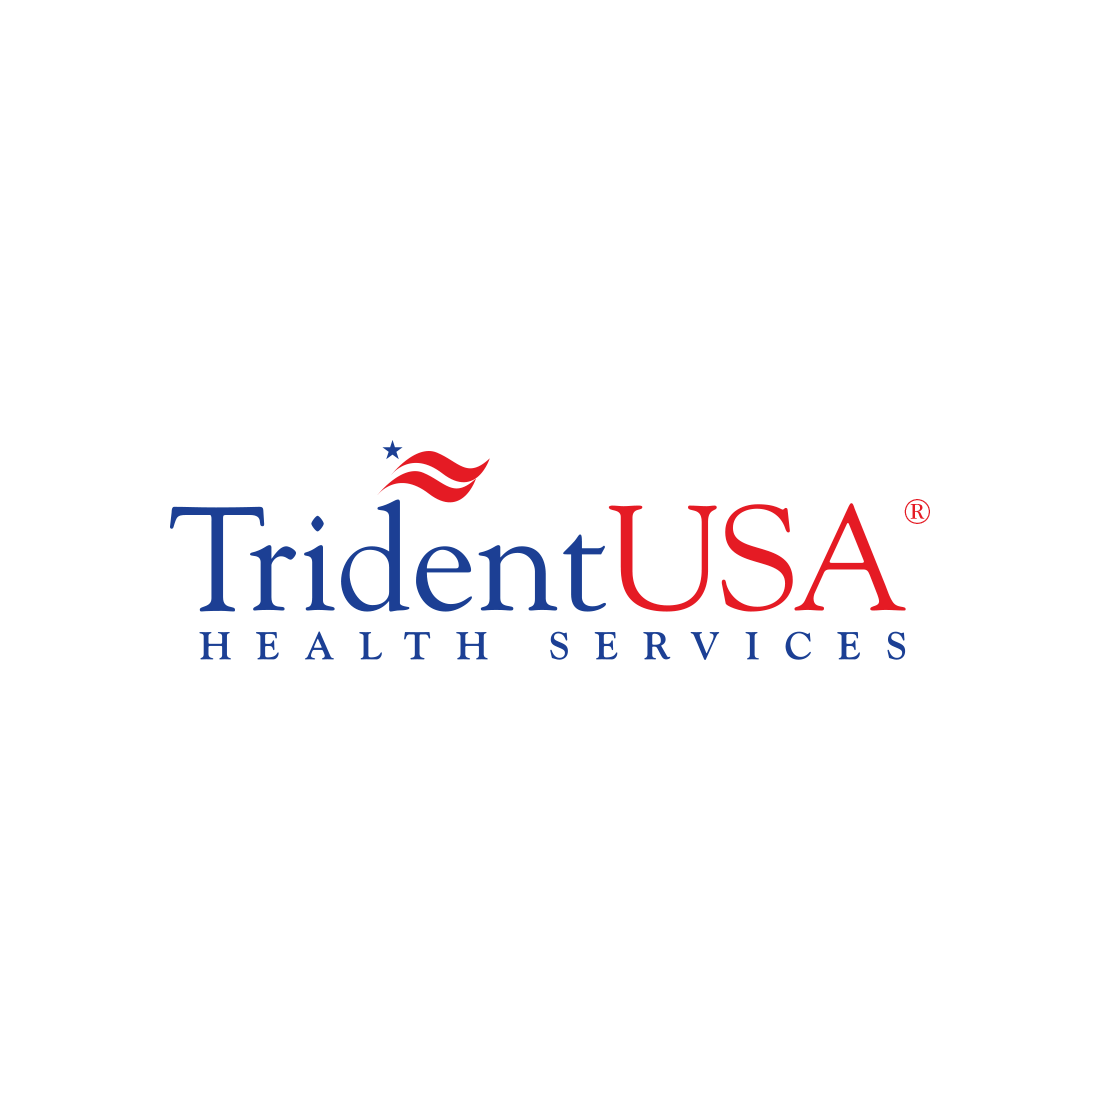 Trident USA Health Services